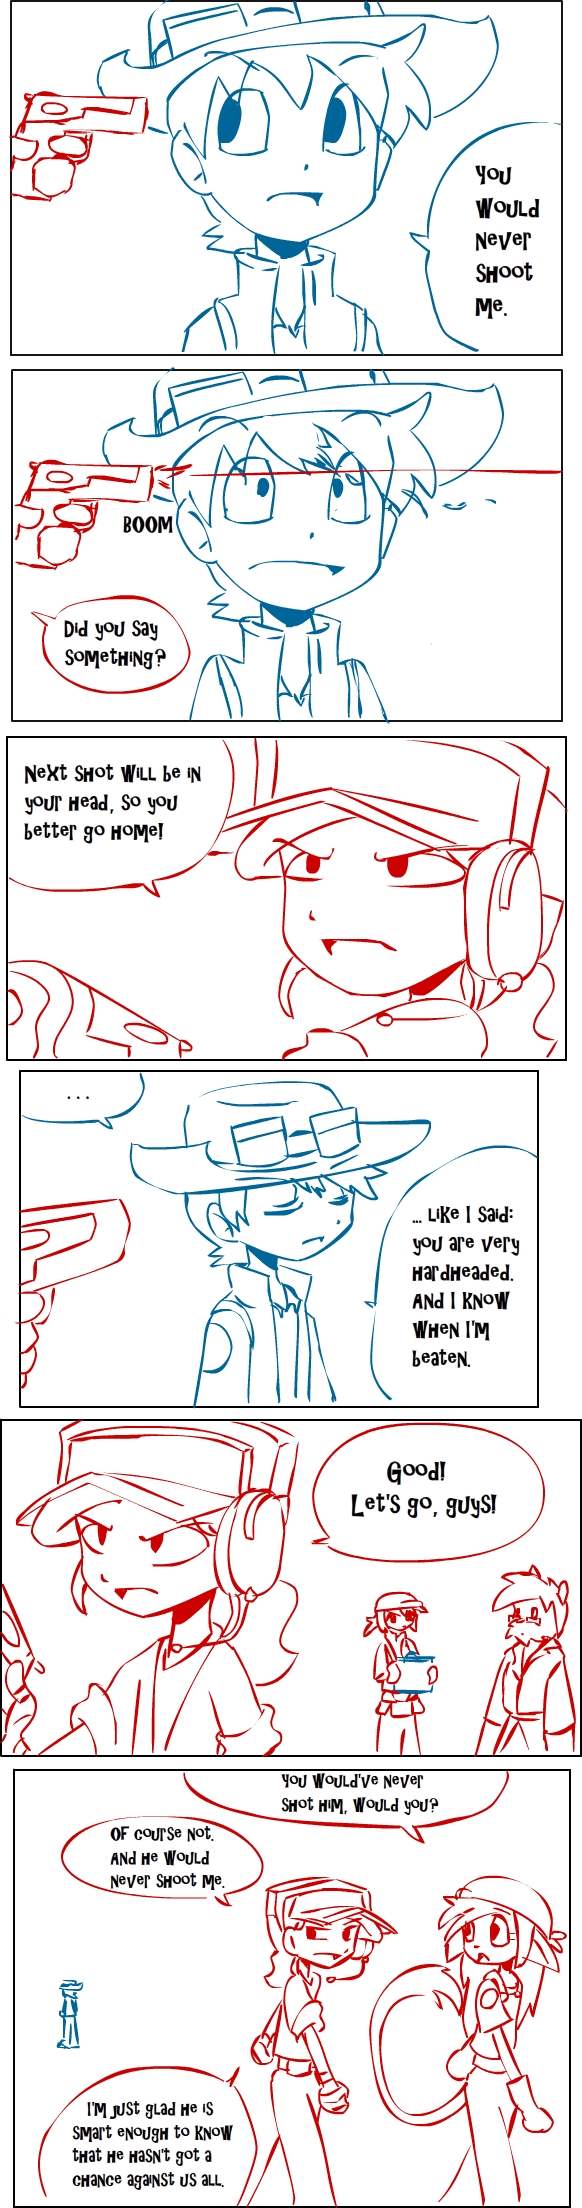 TF2 comic: TEAM RED page 30 by s0s2